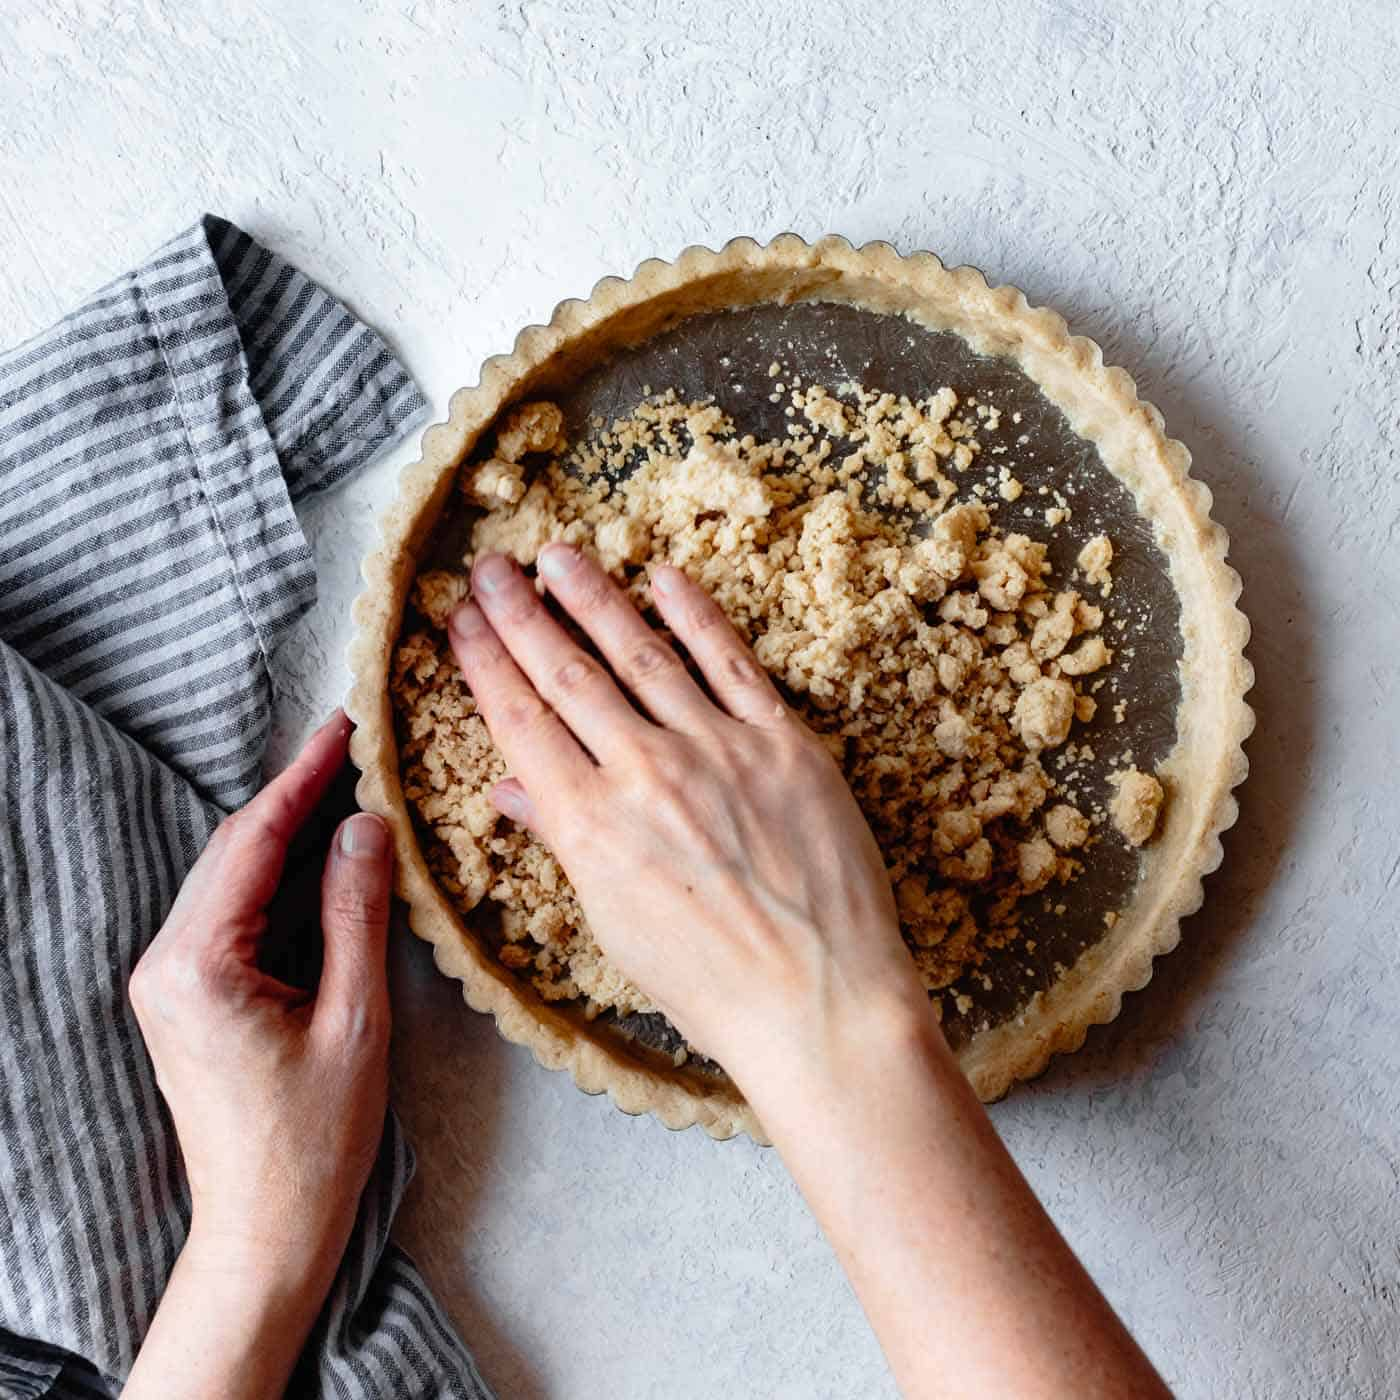 pressing crumbs into gluten-free tart shells